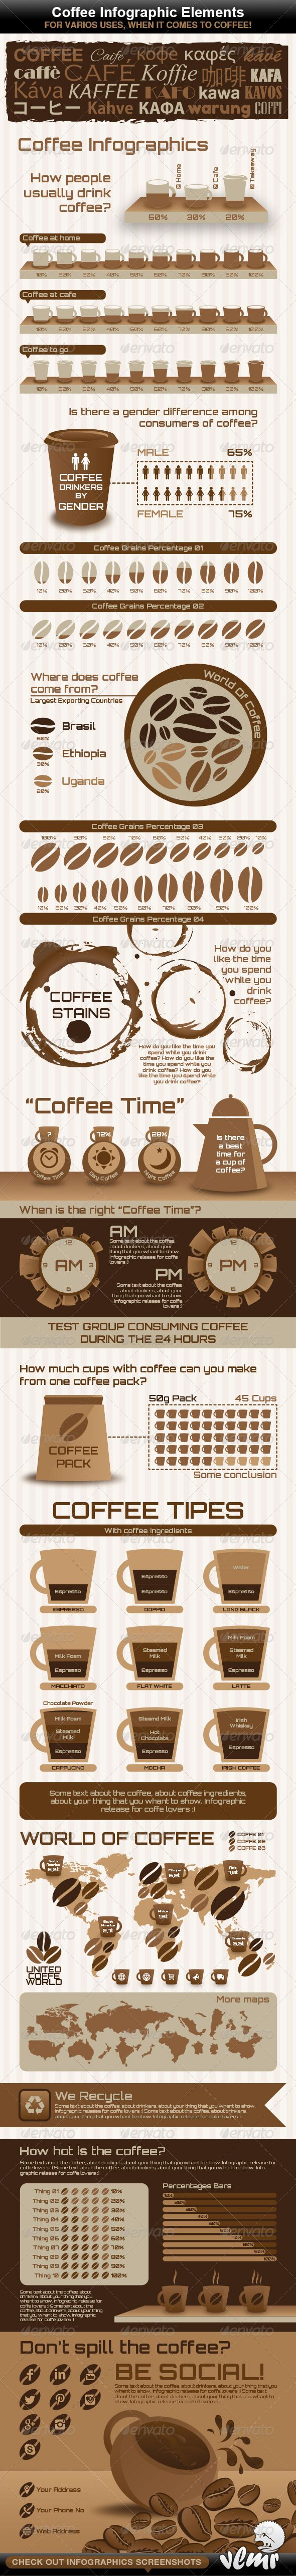 Coffee Infographic Elements aveliable on graphicriver.net  #simple #info #infographic